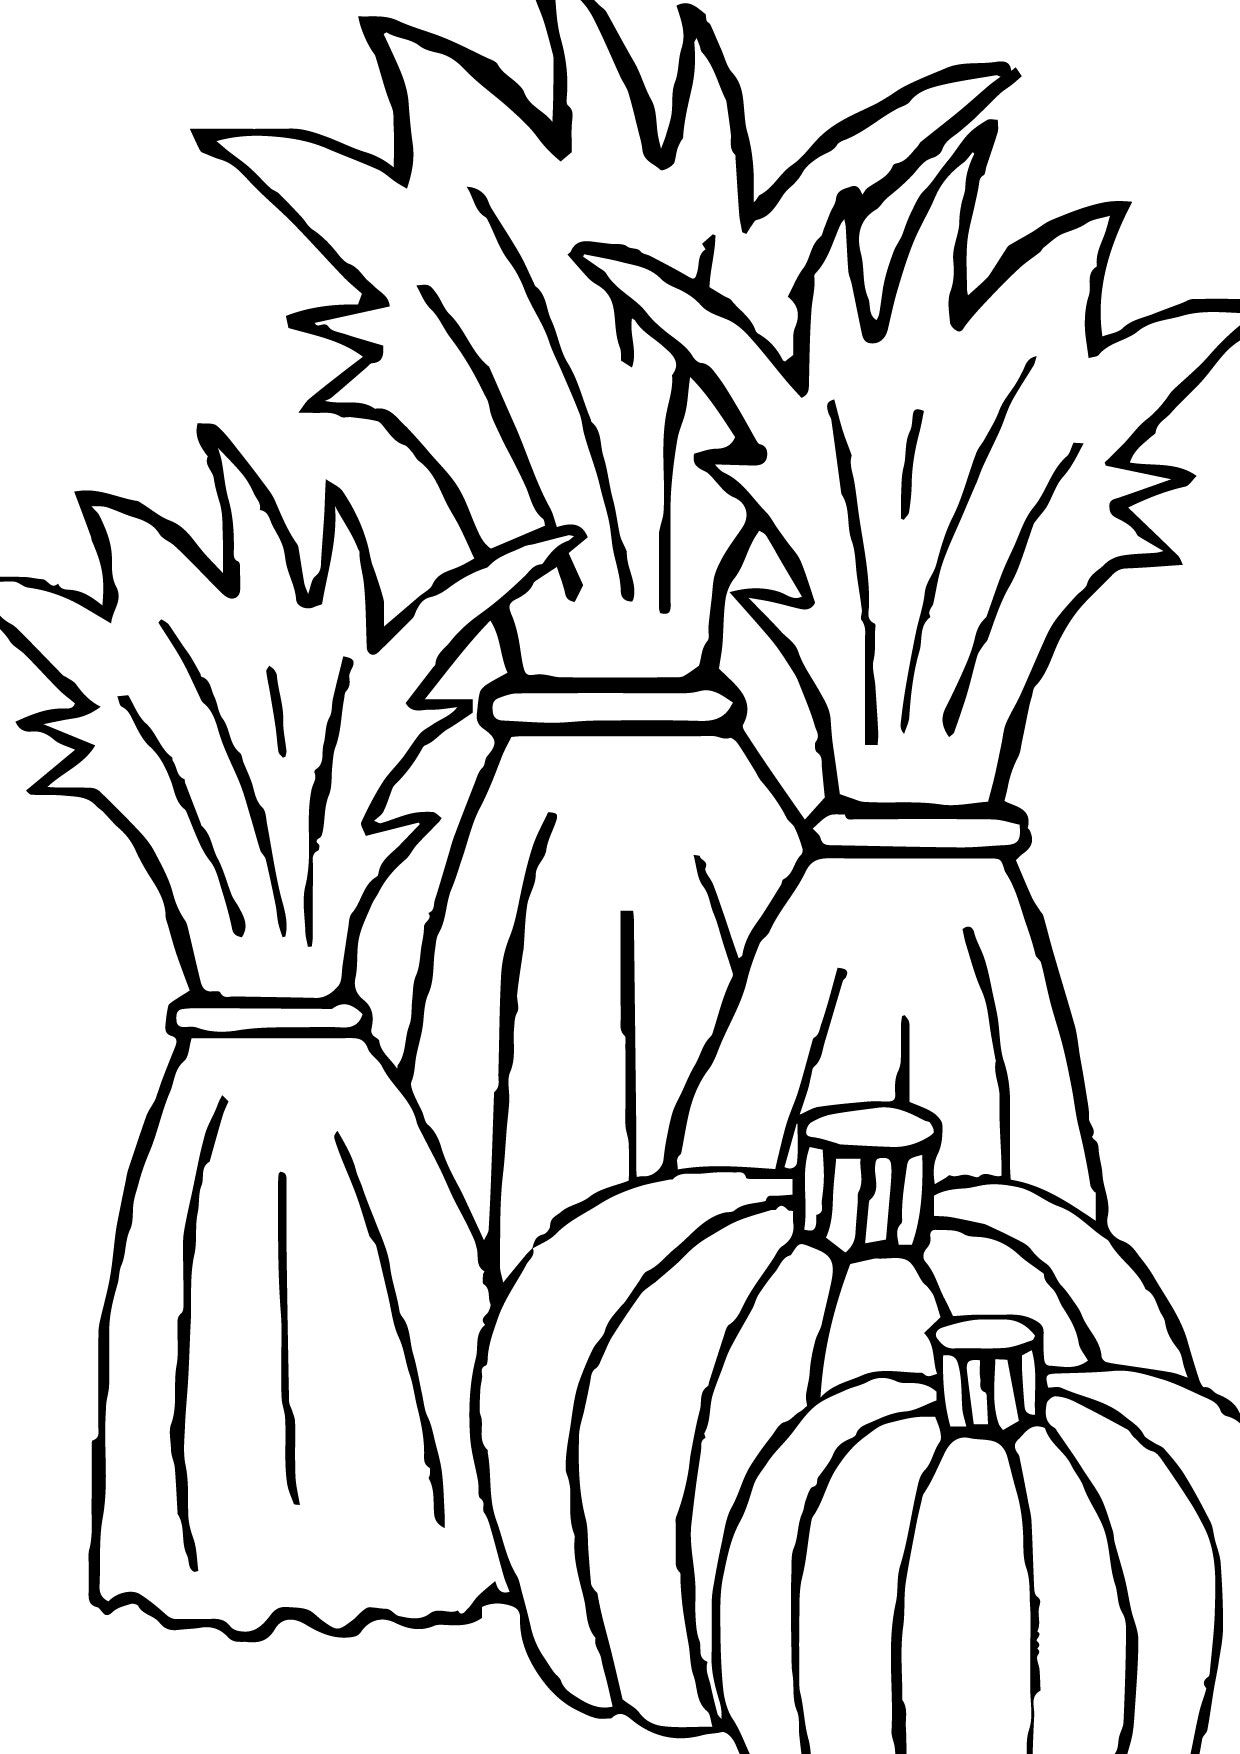 Corn Stalk Coloring Page Fall Coloring Pages Thanksgiving